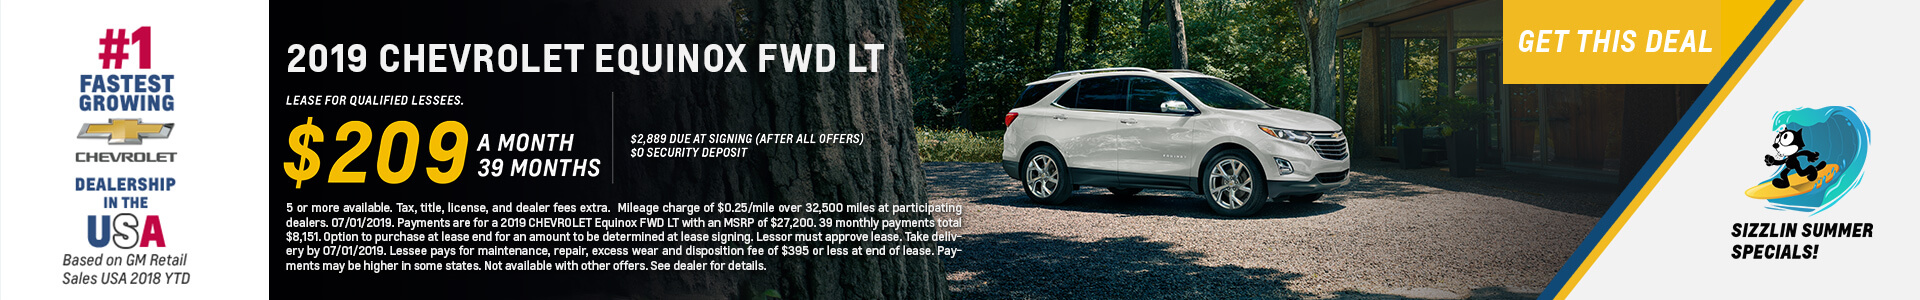 Chevrolet Equinox $209 Lease